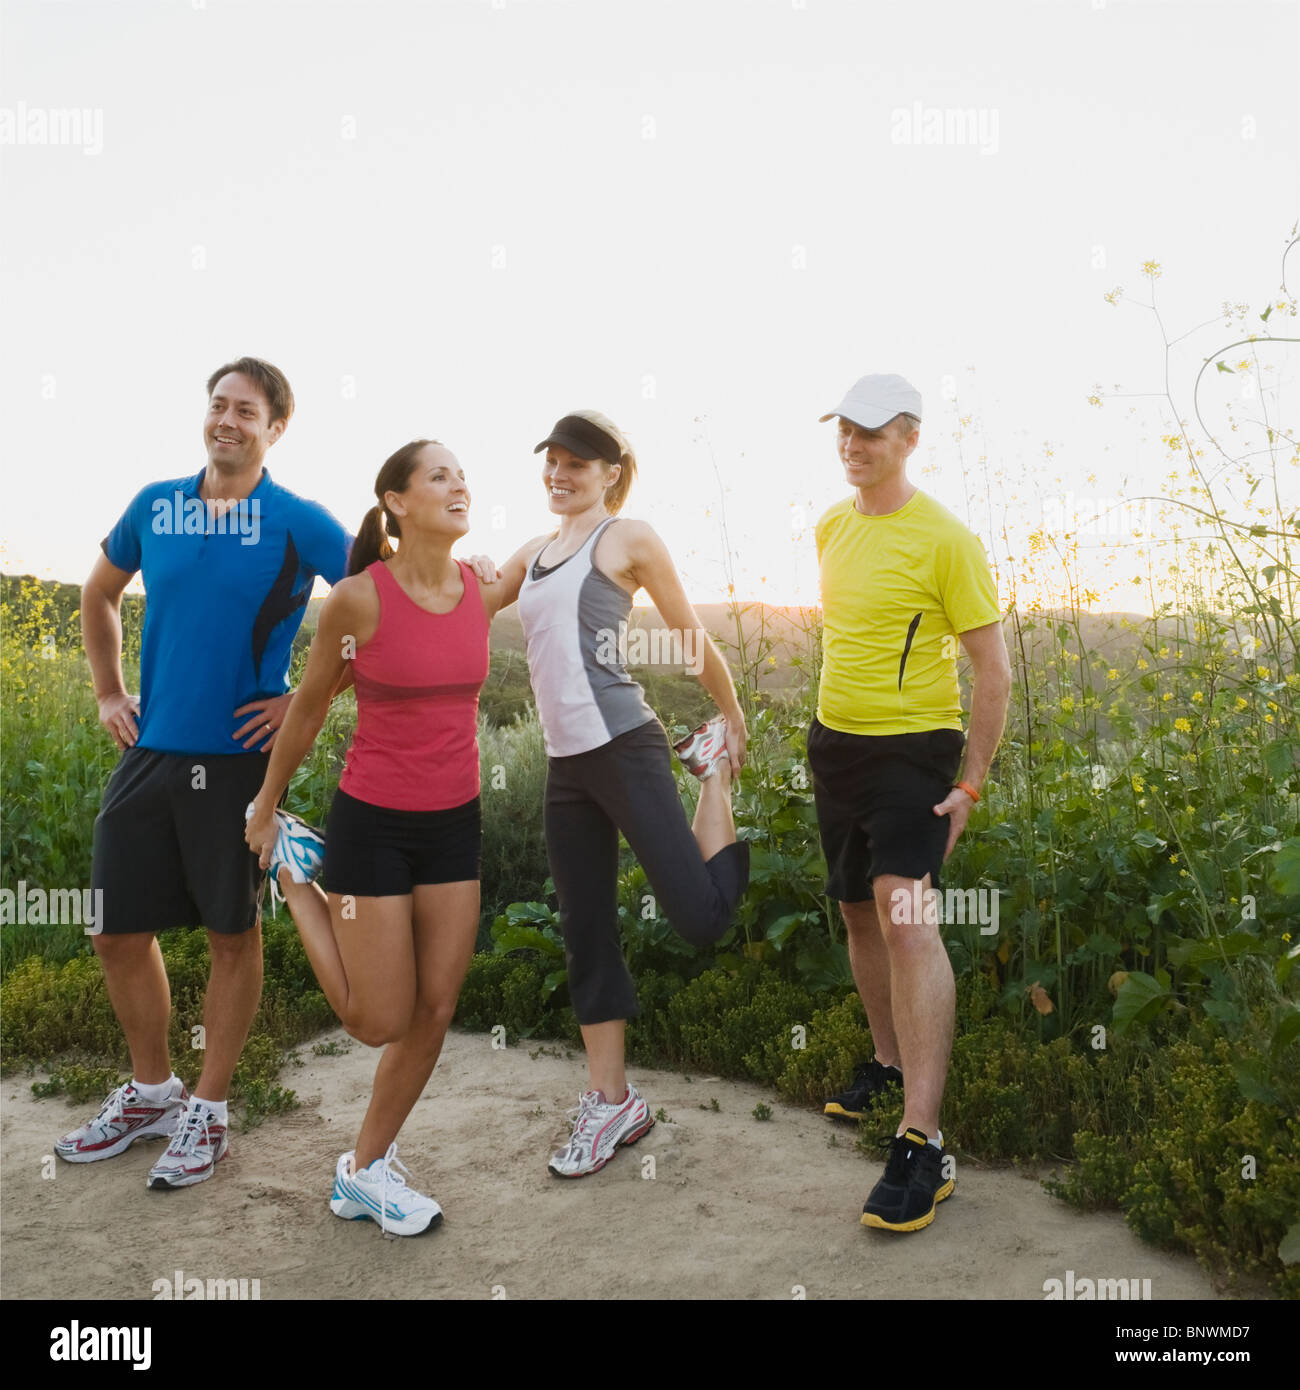 Trail runners stretching - Stock Image